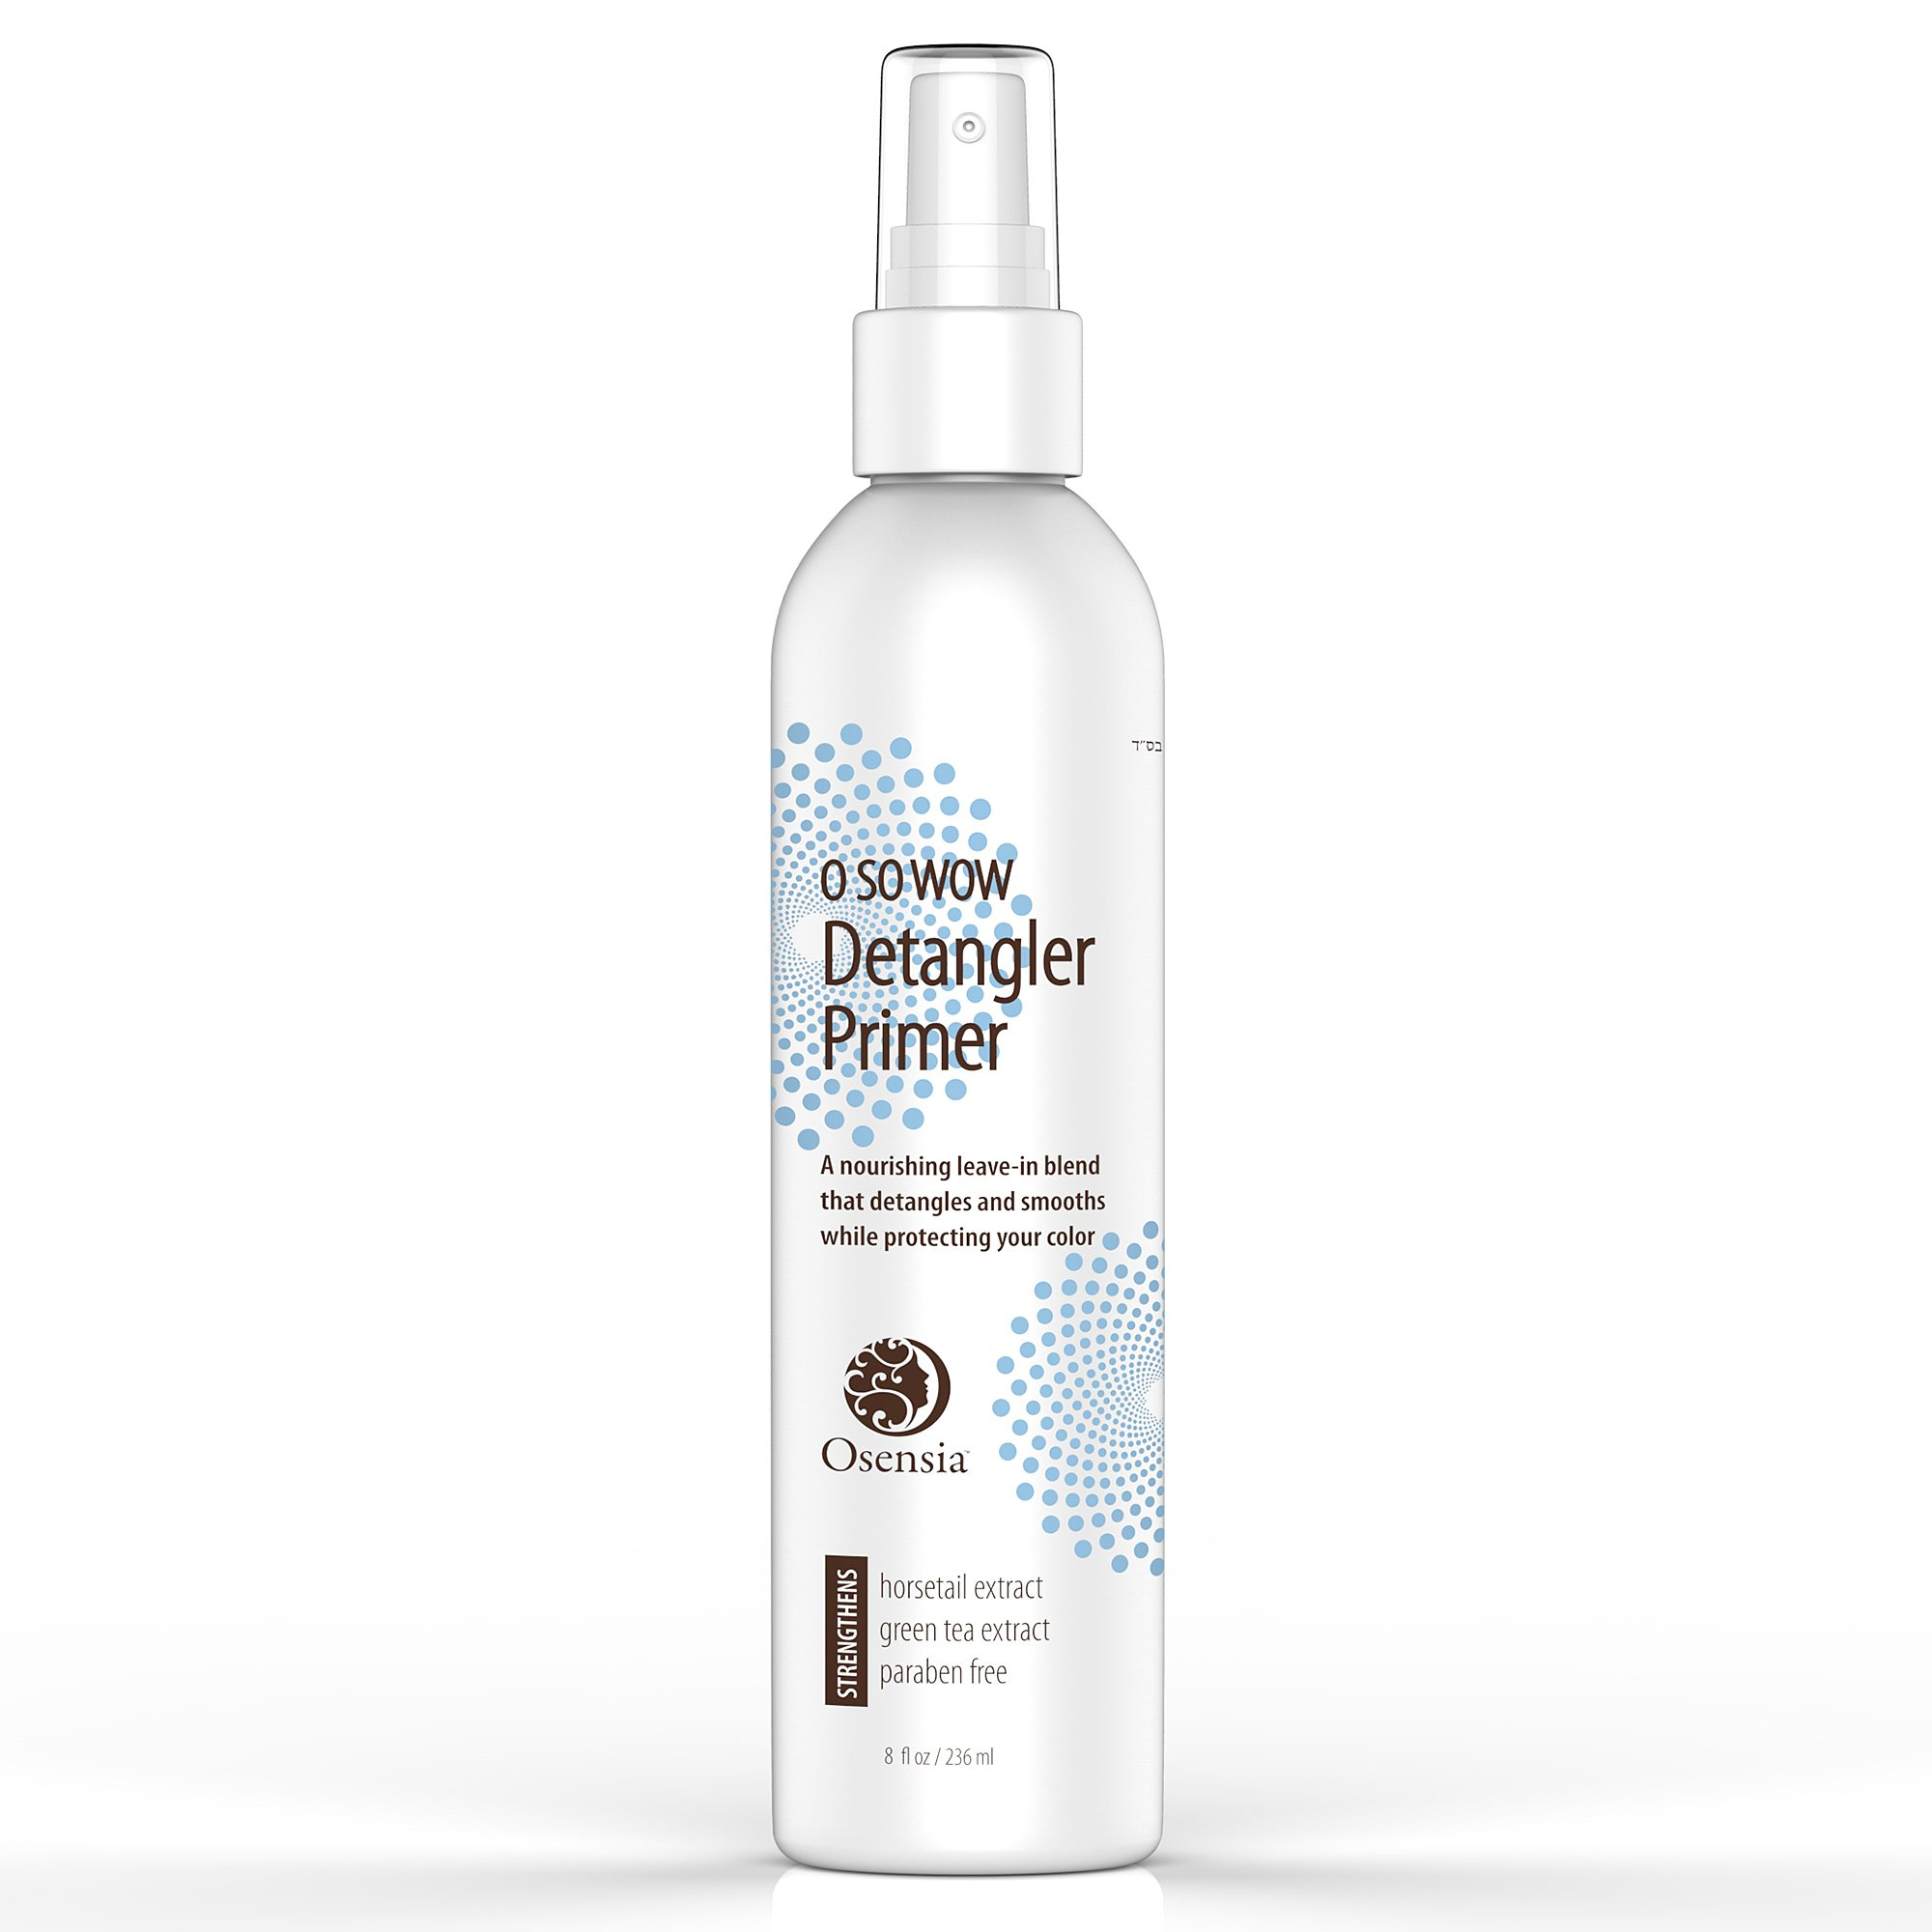 Detangling Leave In Conditioner and Primer – Heat Protectant Spray - Moisturizing, Detangle, Prime, Strengthen Hair with Horsetail Extract, Paraben Free by Osensia, 8oz by Osensia